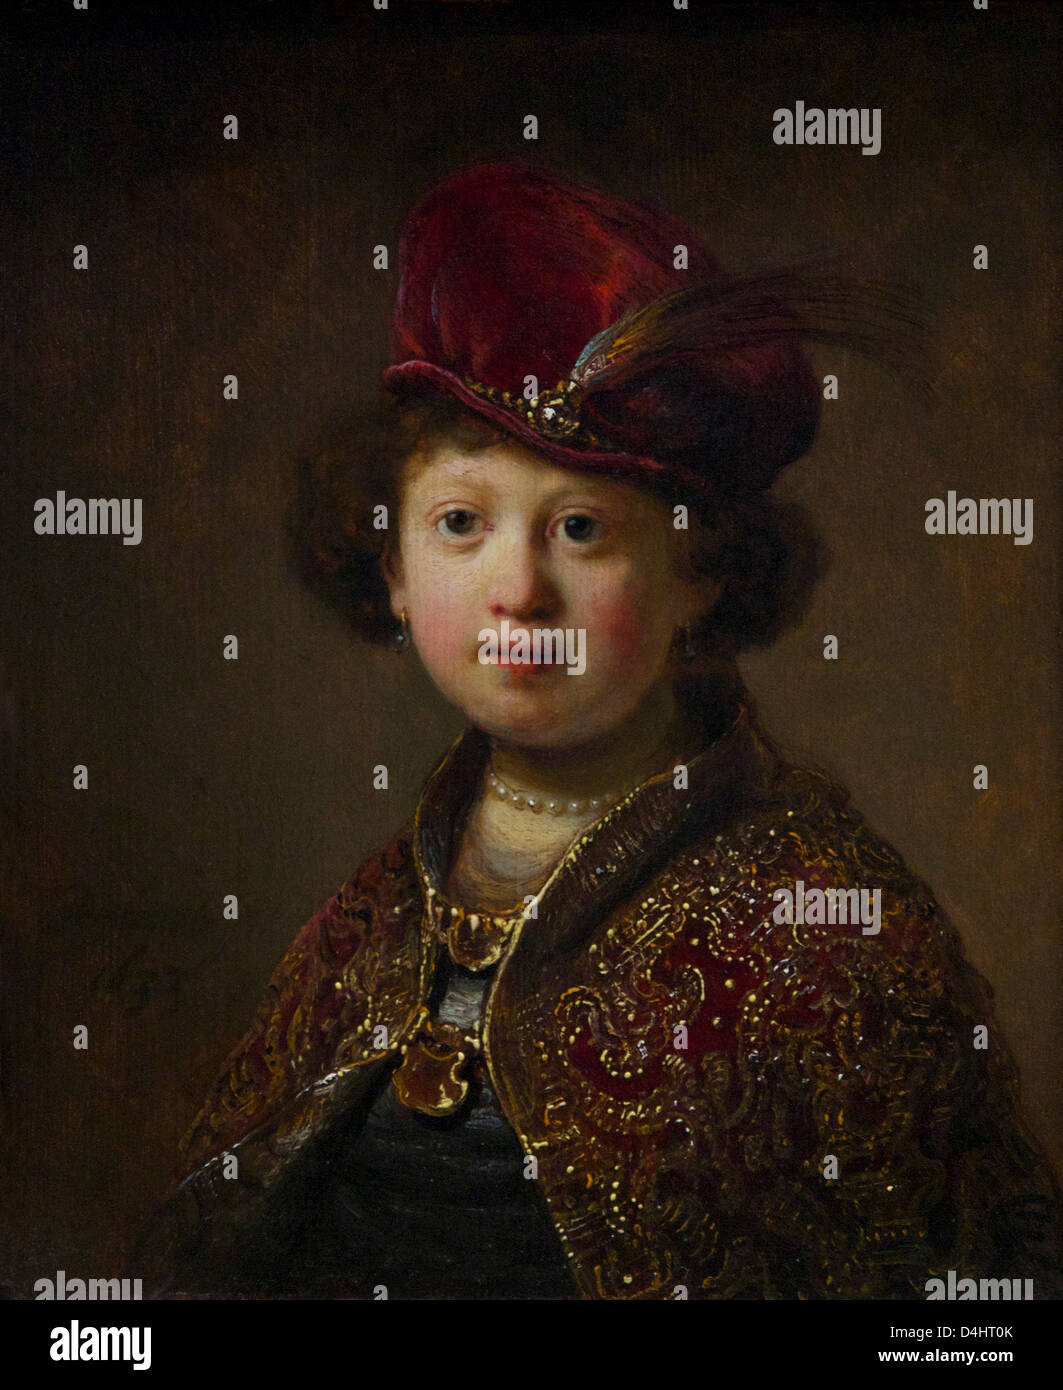 Boy in Fanciful Costume, by studio of Rembrandt van Rijn, 1633, Wallace Collection, London, England, UK, GB - Stock Image